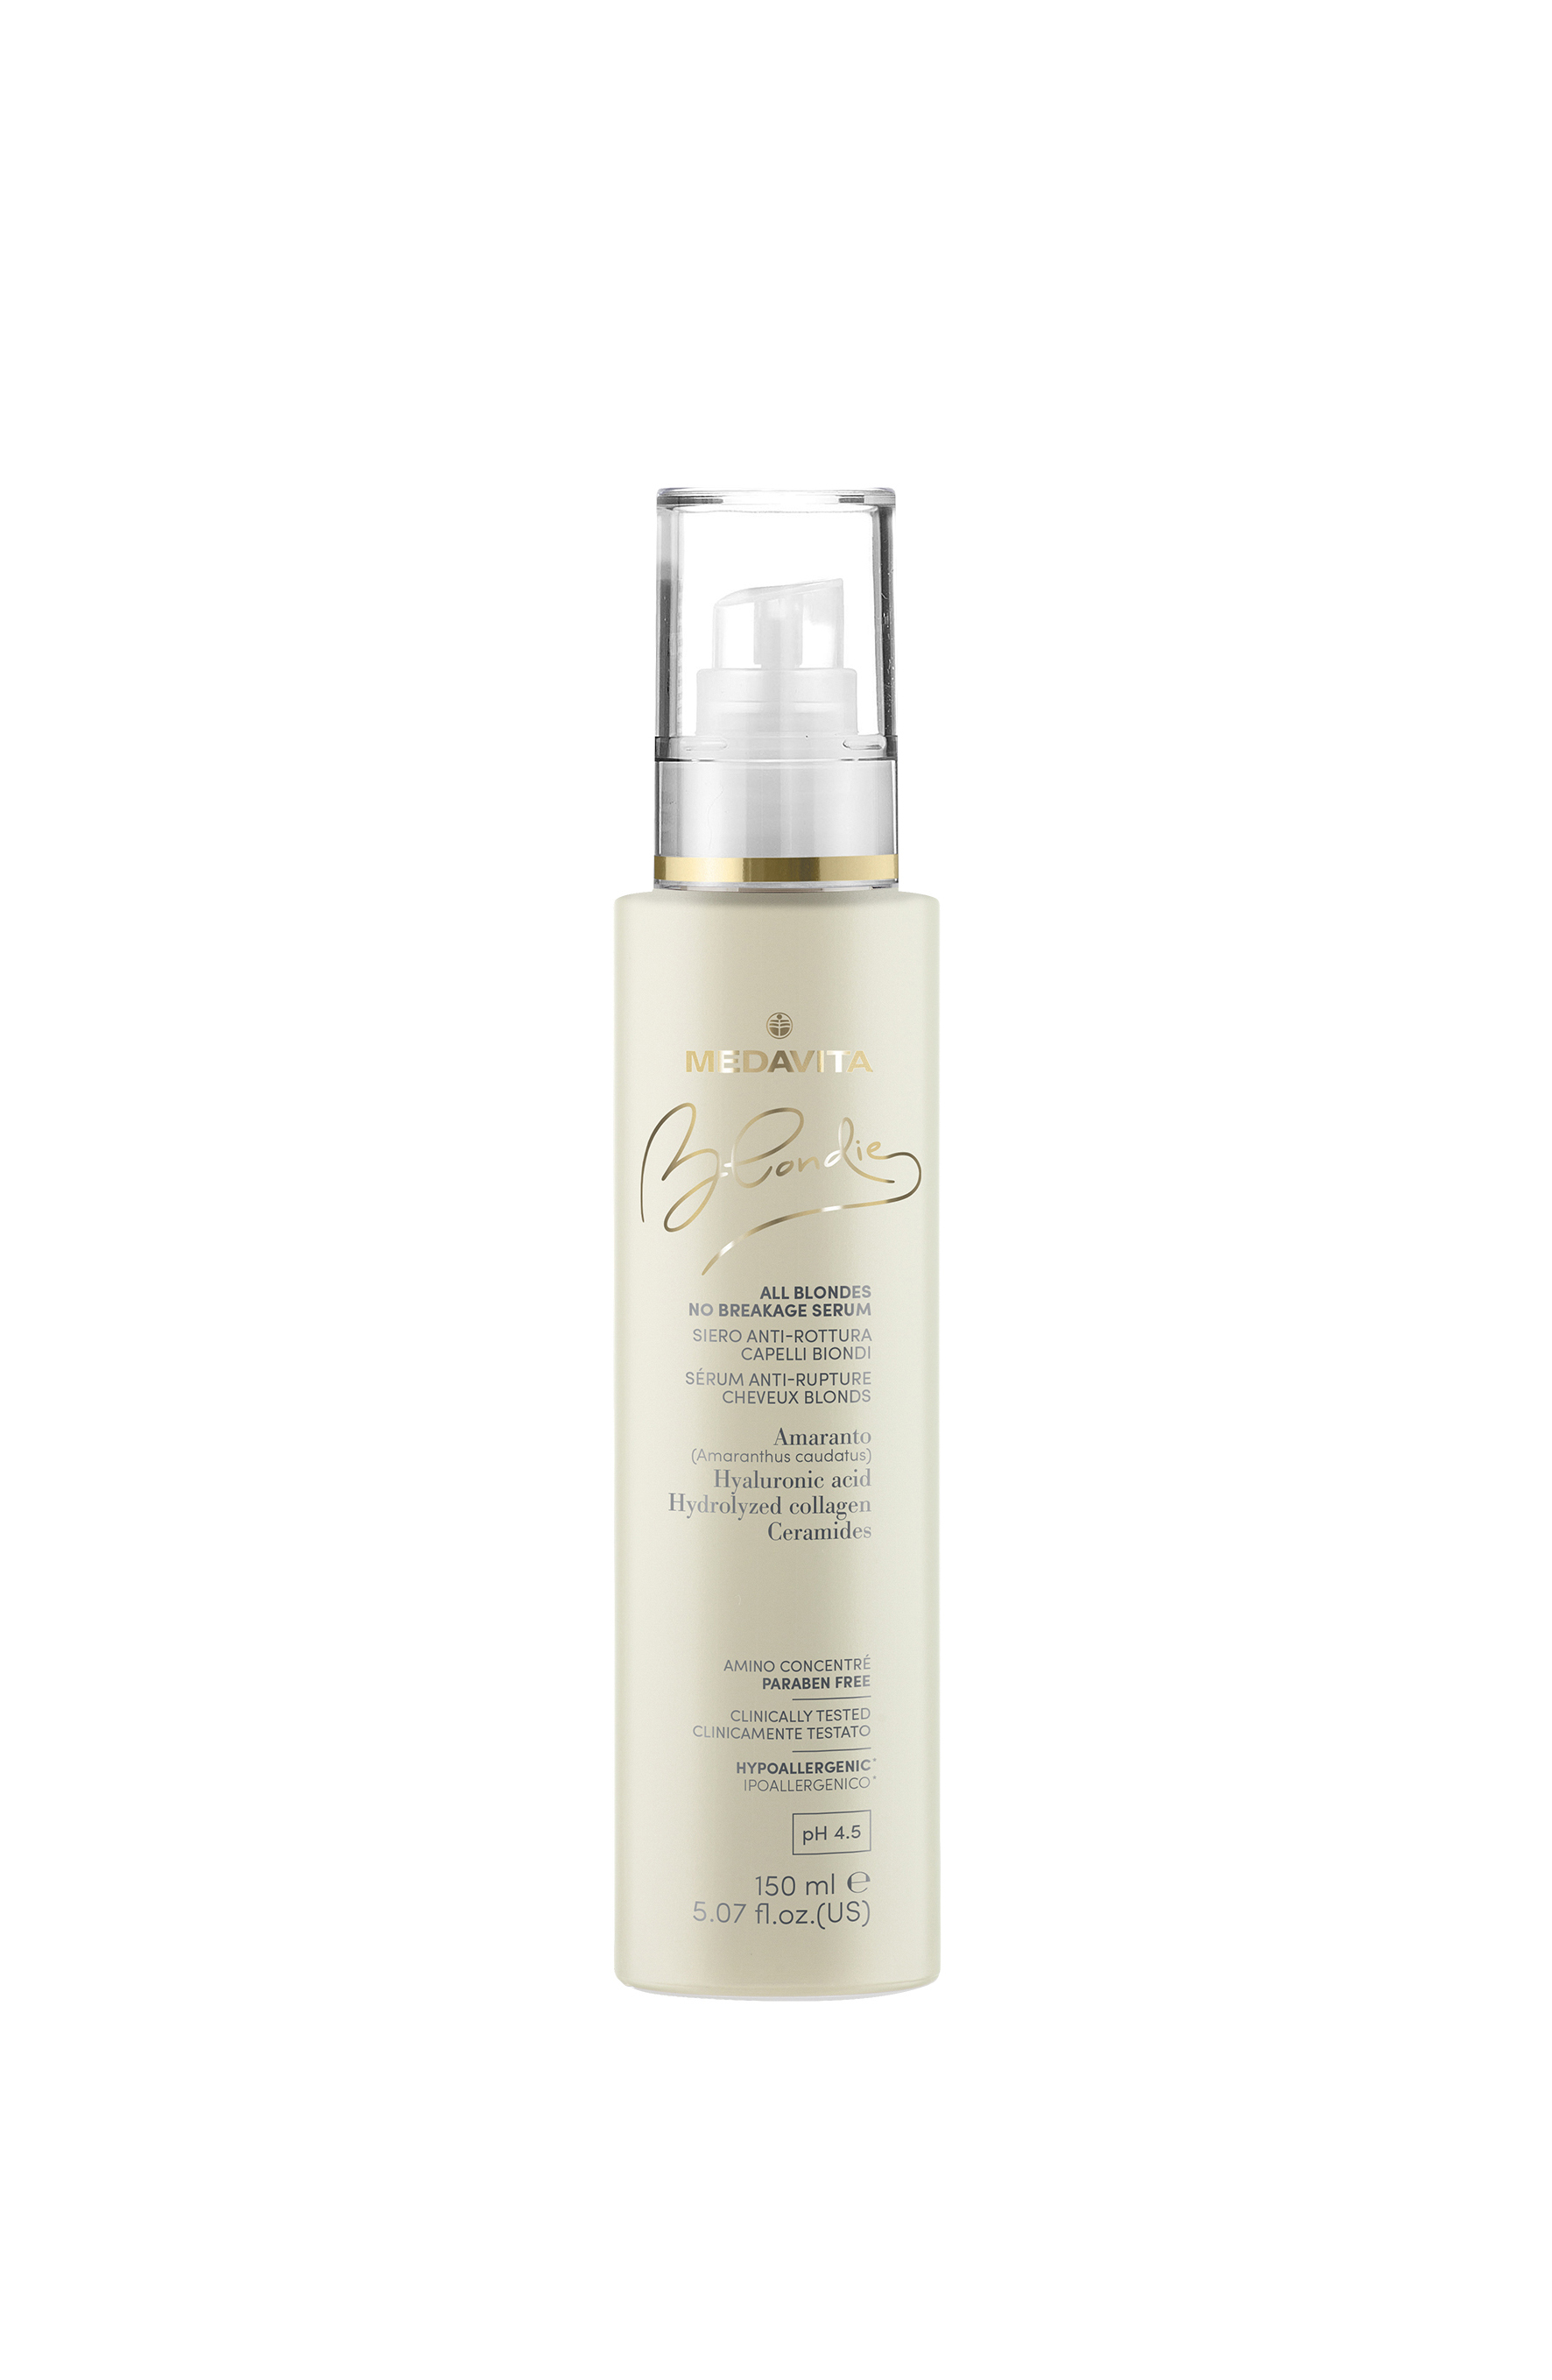 Blondie flacone spray All Blondes No Breakage Serum 150ml